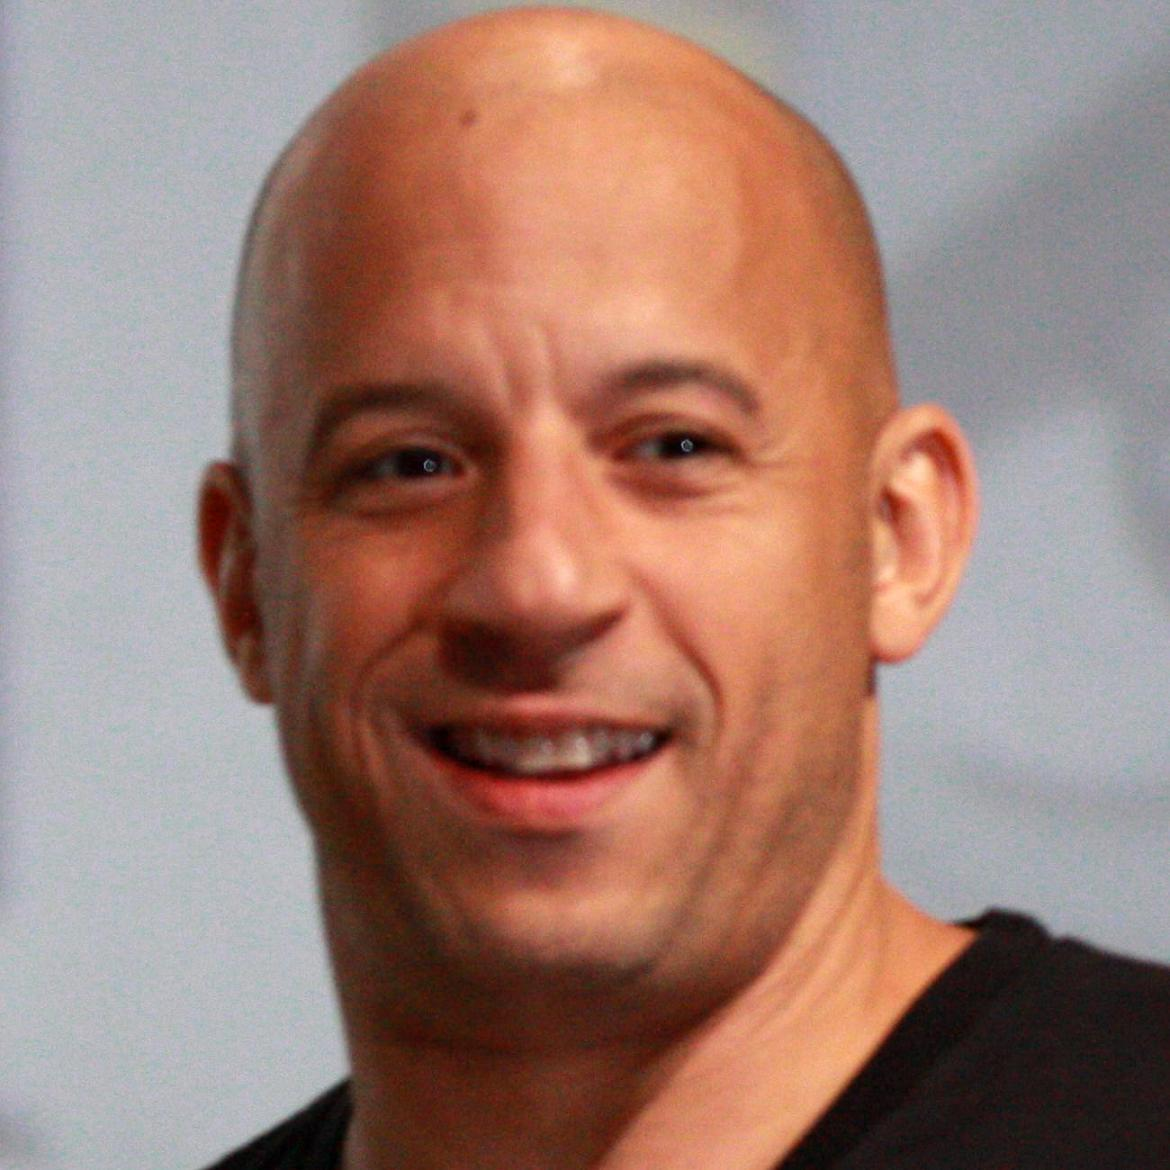 vin diesel wikipedia wolna encyklopedia. Black Bedroom Furniture Sets. Home Design Ideas